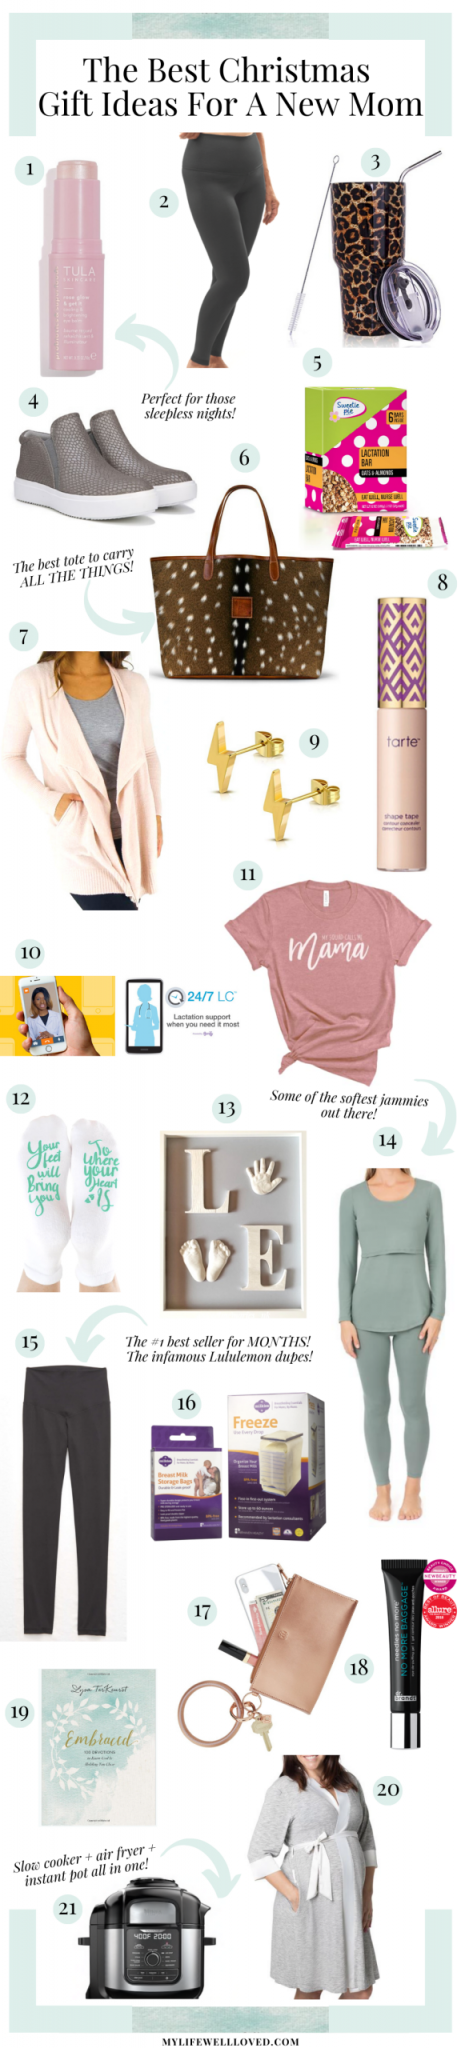 The Best Christmas Gift Ideas For New Moms My Life Well Loved